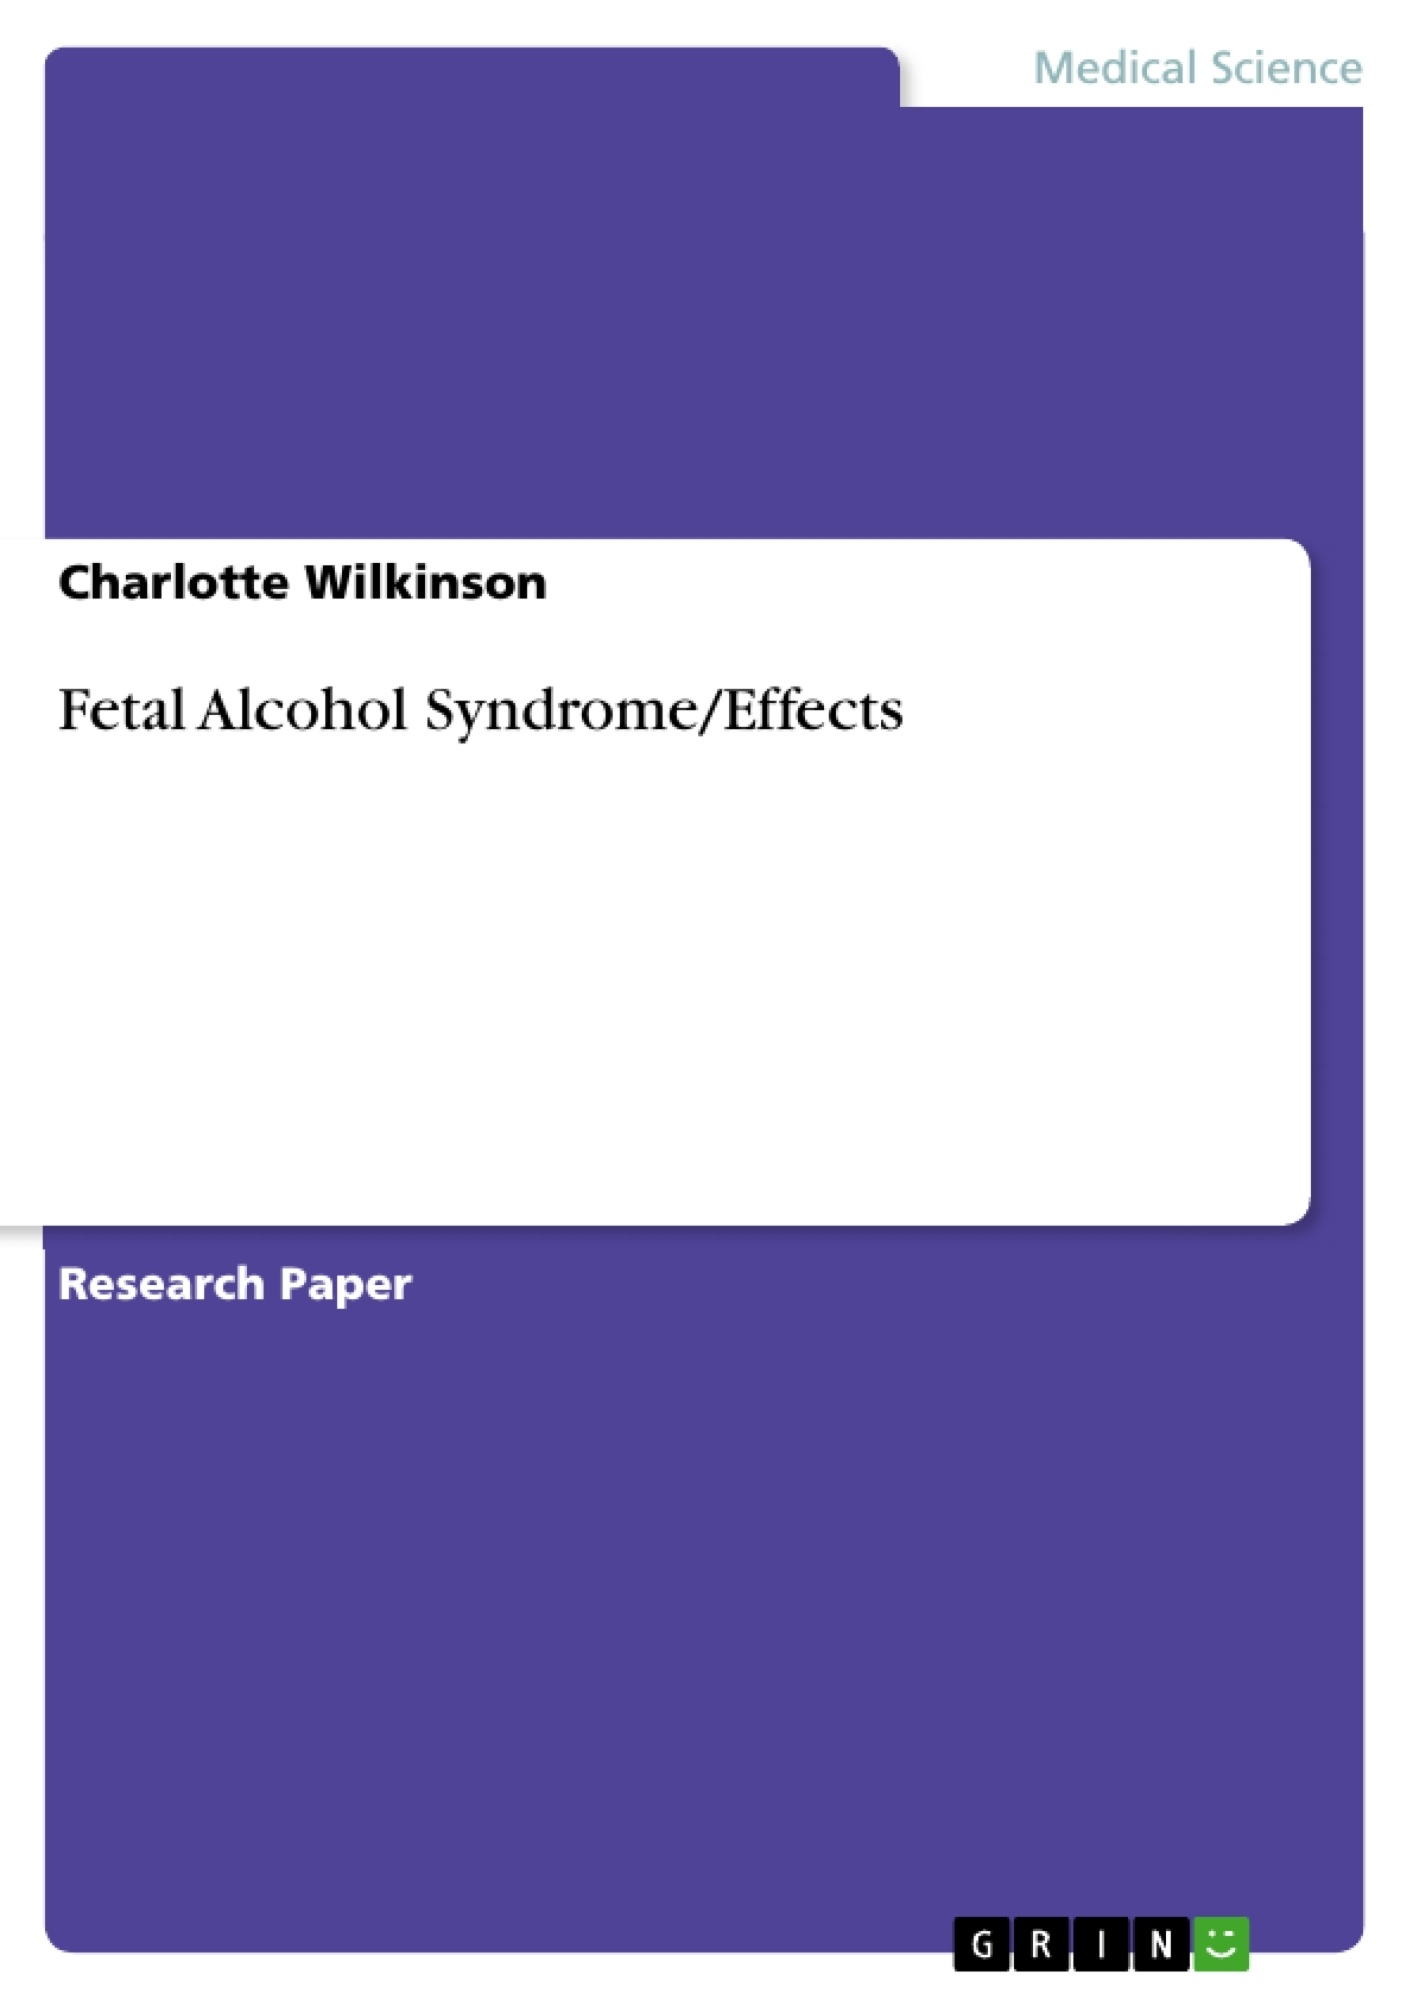 effects of fetal alcohol syndrome essay Fetal alcohol syndrome is a set of birth  she could about the effects of alcohol on fetal development  this essay and no longer wish to.